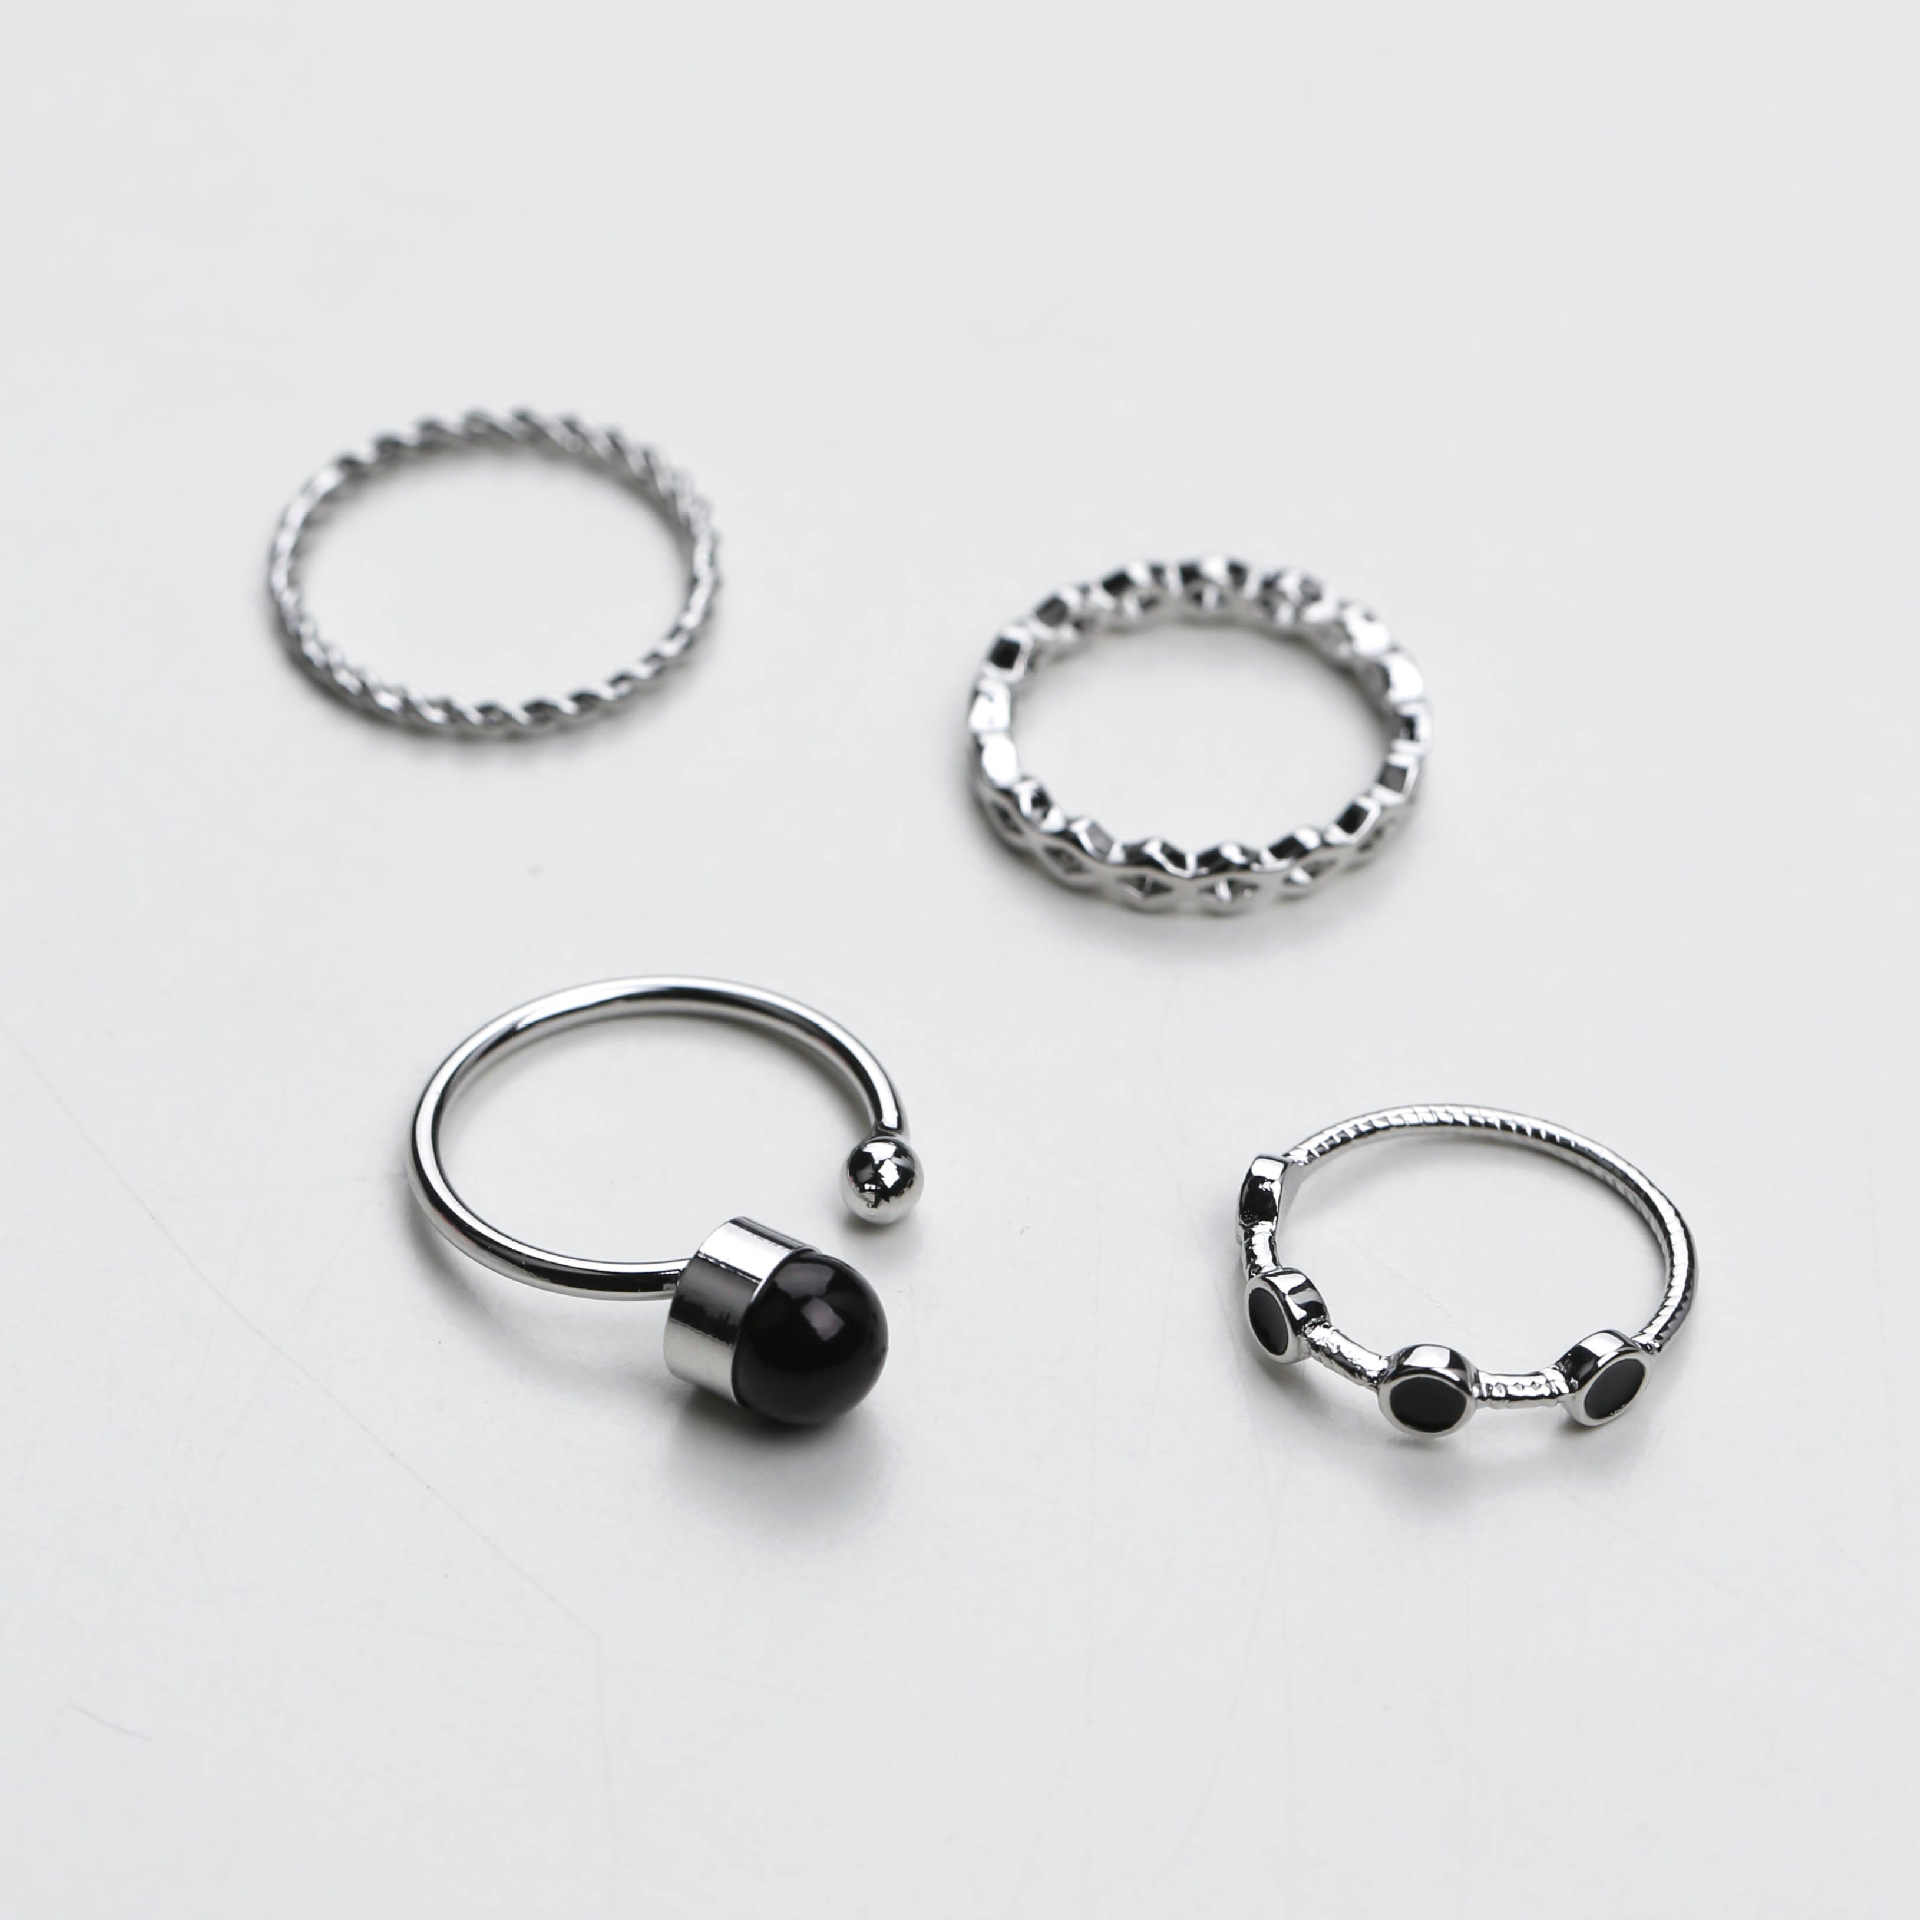 4pcs/set Japan Korean Simple Vintage Silver Color Black Beads Water Ripple Rings Sets for Women Party Charm Punk Jewerly